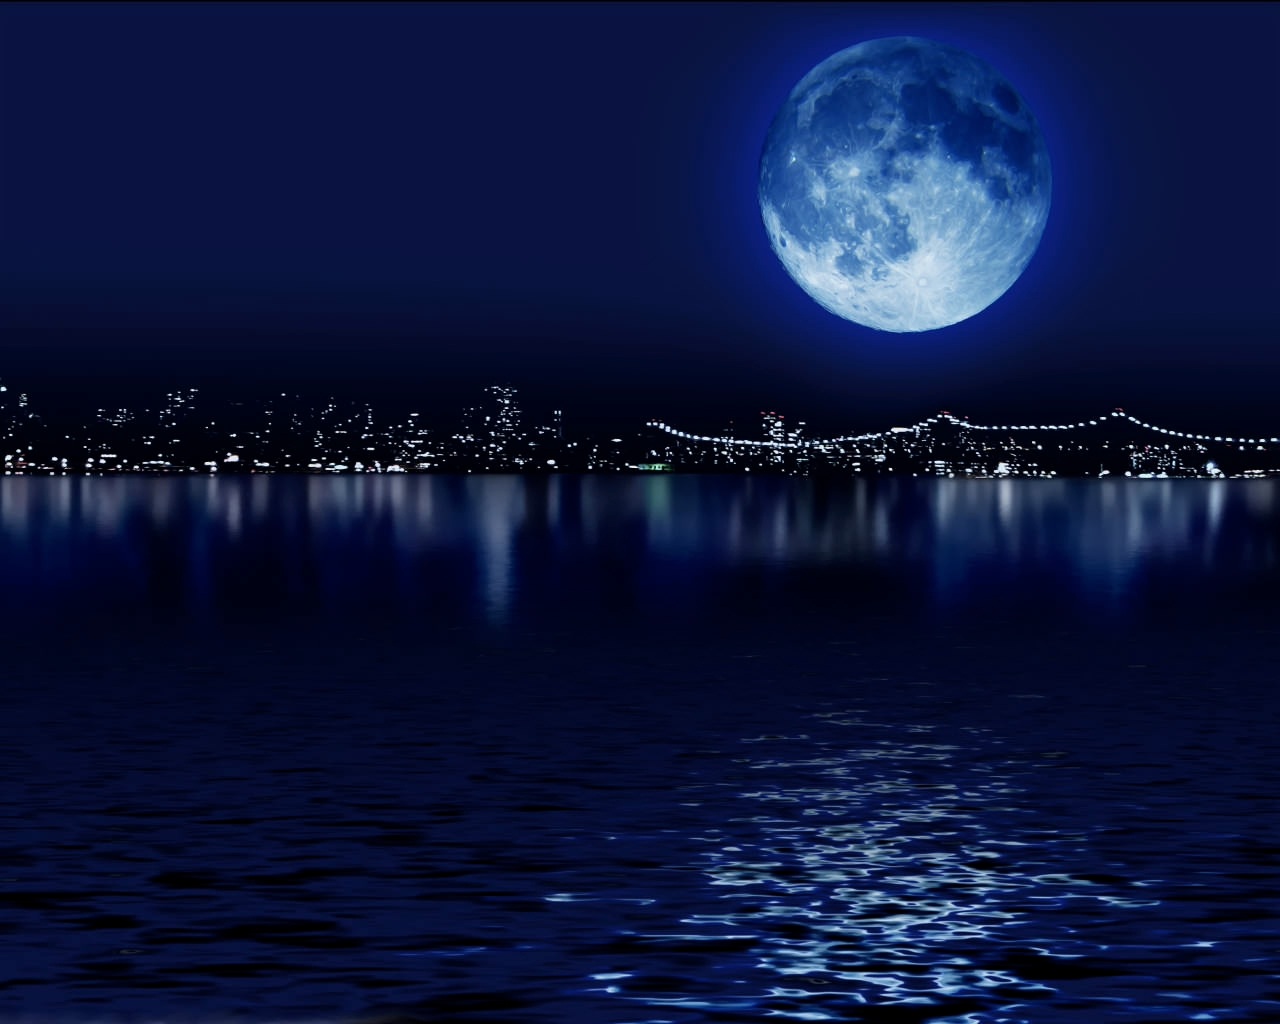 blue-moon-wallpaper with colorful background